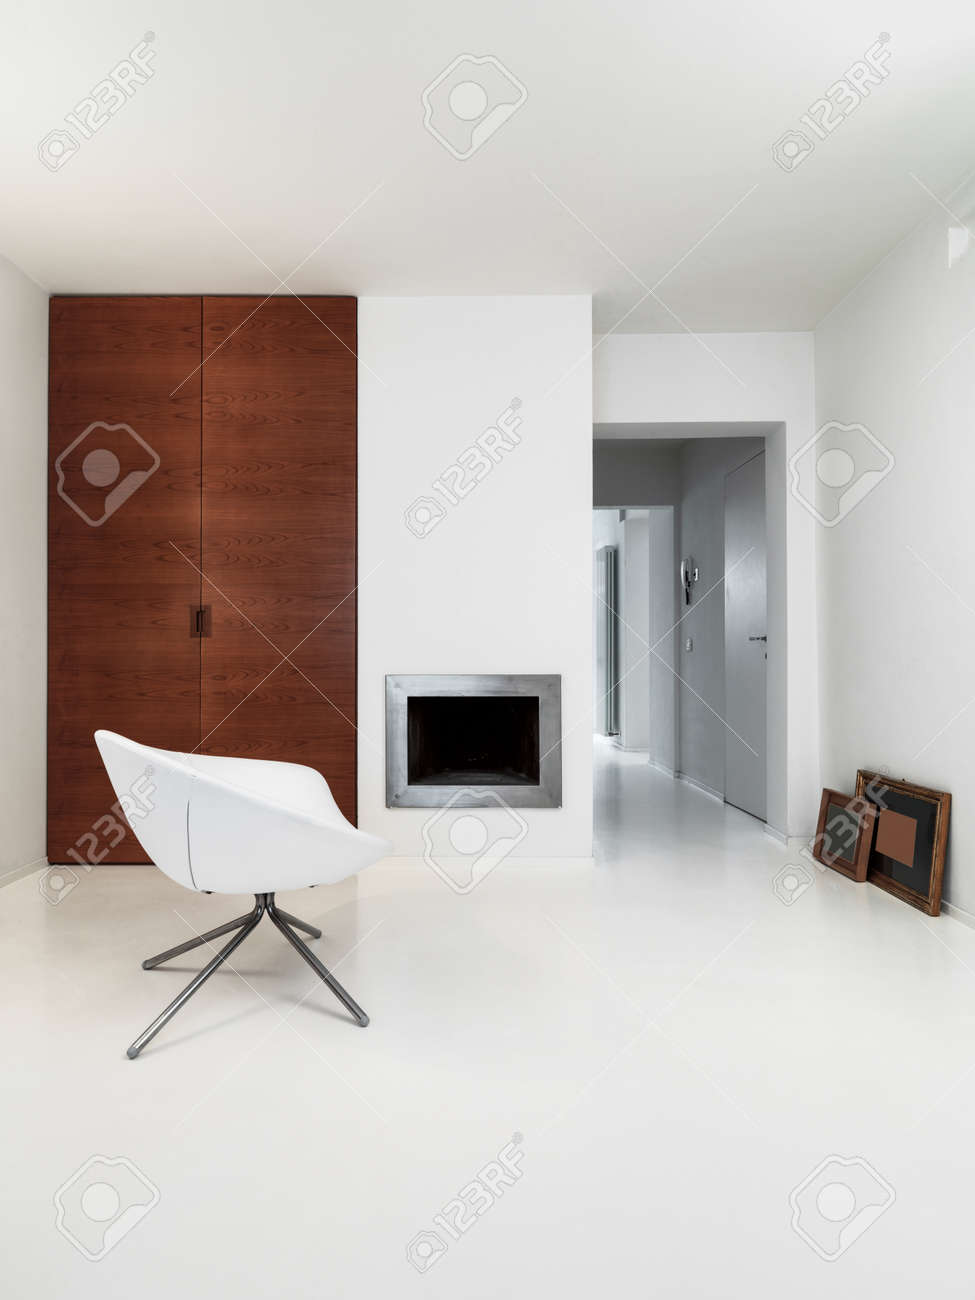 interior view of a modern living room with fireplace and white resin floor Standard-Bild - 51843895